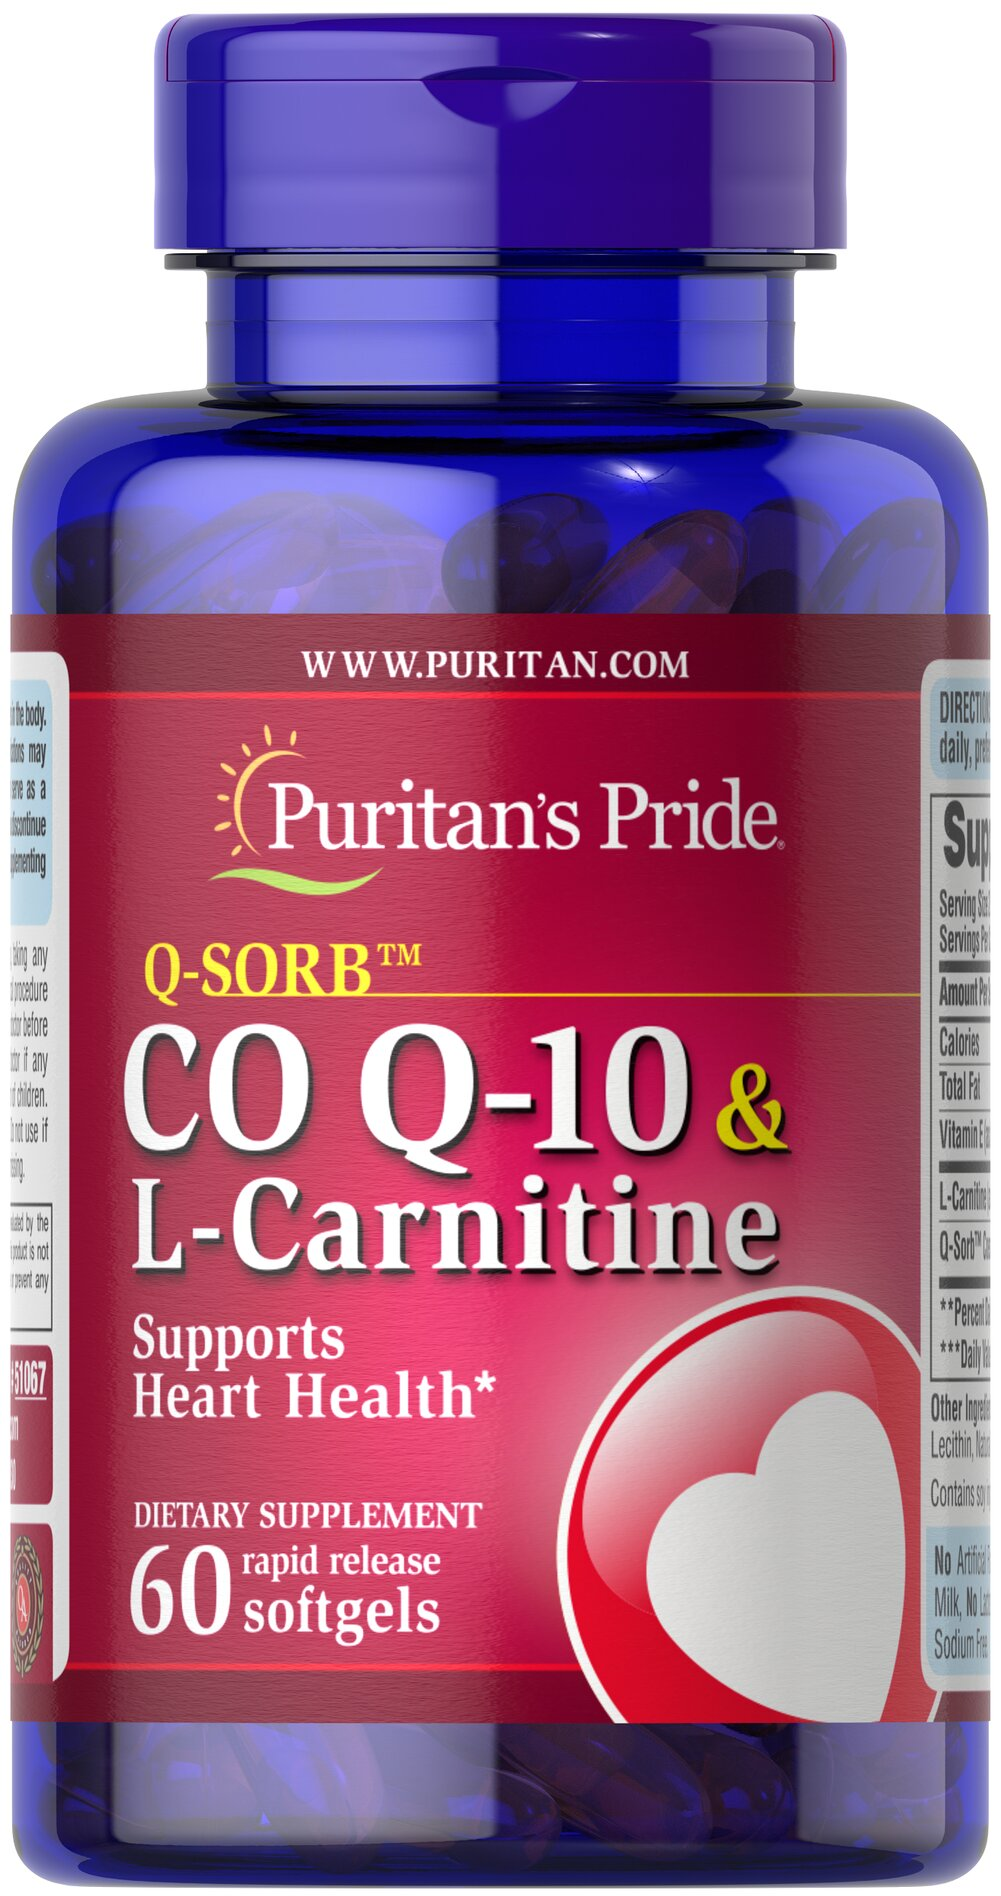 Co Q-10 30 mg plus L-Carnitine 250 mg <p>Provides powerful nutrients that support your heart**</p>  <p>Supports energy production**</p>  <p>Statin drugs can reduce Co Q-10 levels in the body, so taking Co Q-10 & L-Carnitine can replenish what Statin drugs can deplete++</p> </p><p>++Note: Co Q-10 is not intended to serve as a replacement for Statin therapy, nor should you discontinue taking any prescribed medications while supplementing with Co